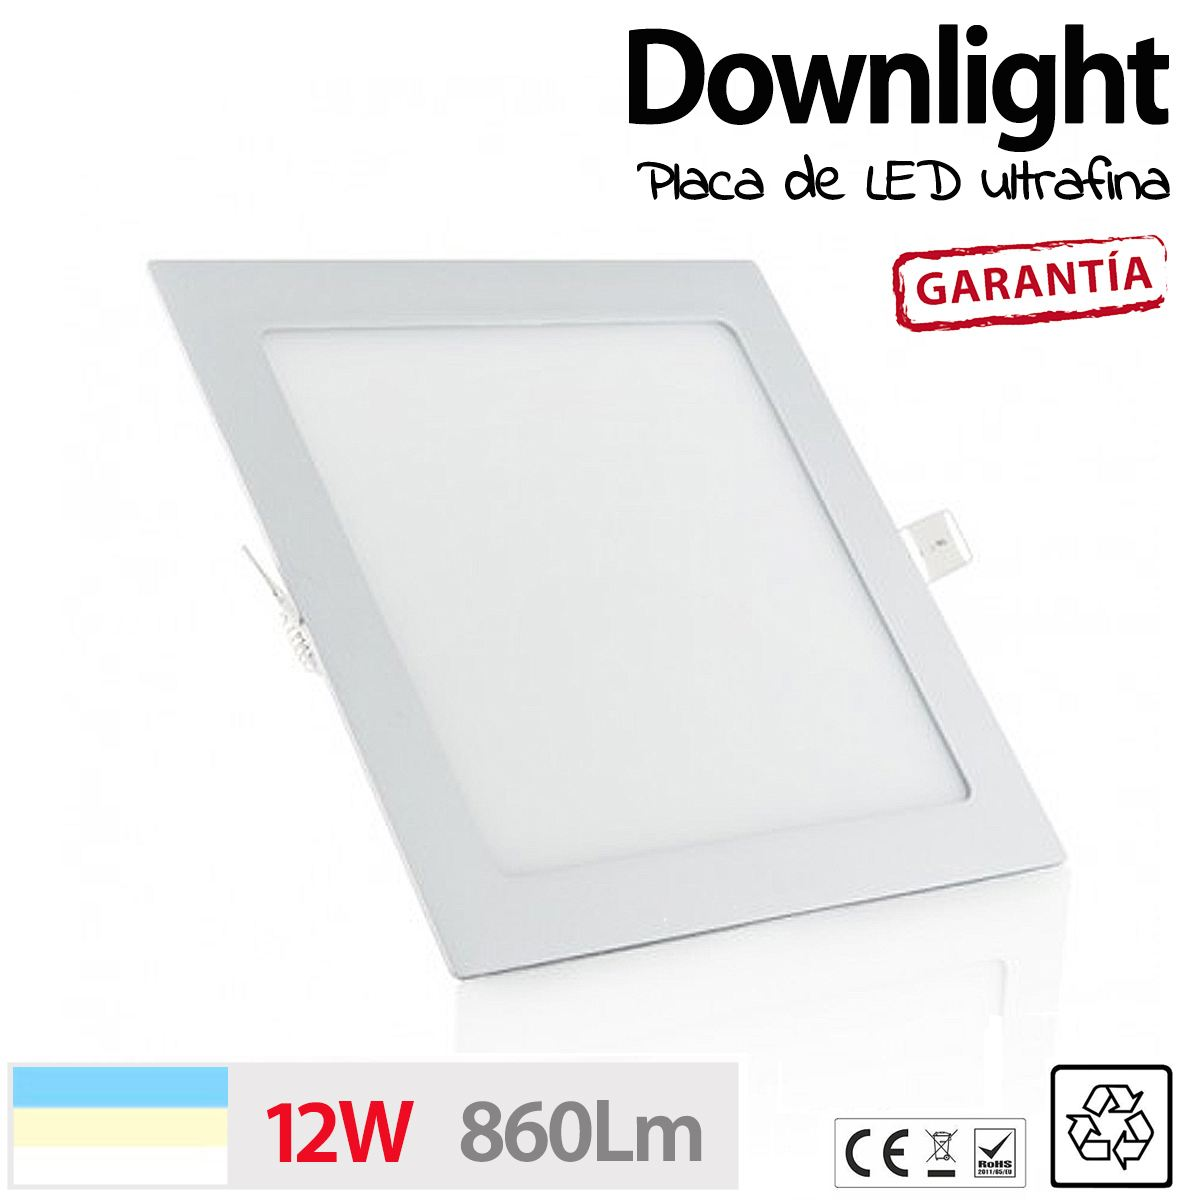 Downlight cuadrado 12w ultrafino placa led luz cocina - Focos led para banos ...